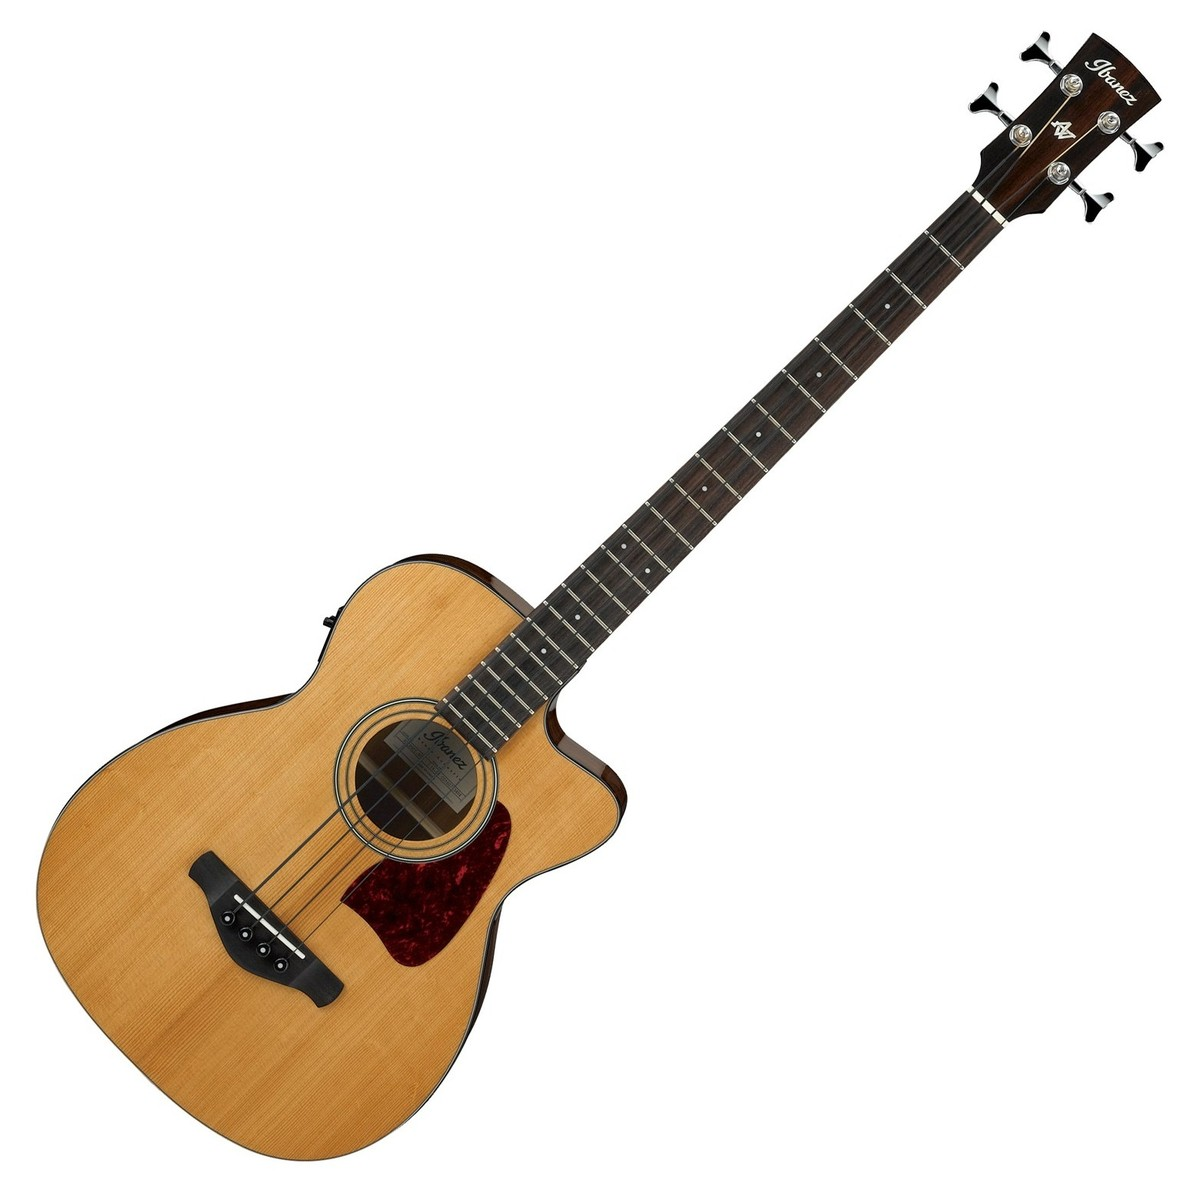 ibanez avcb9ce electro acoustic bass guitar natural high gloss at. Black Bedroom Furniture Sets. Home Design Ideas